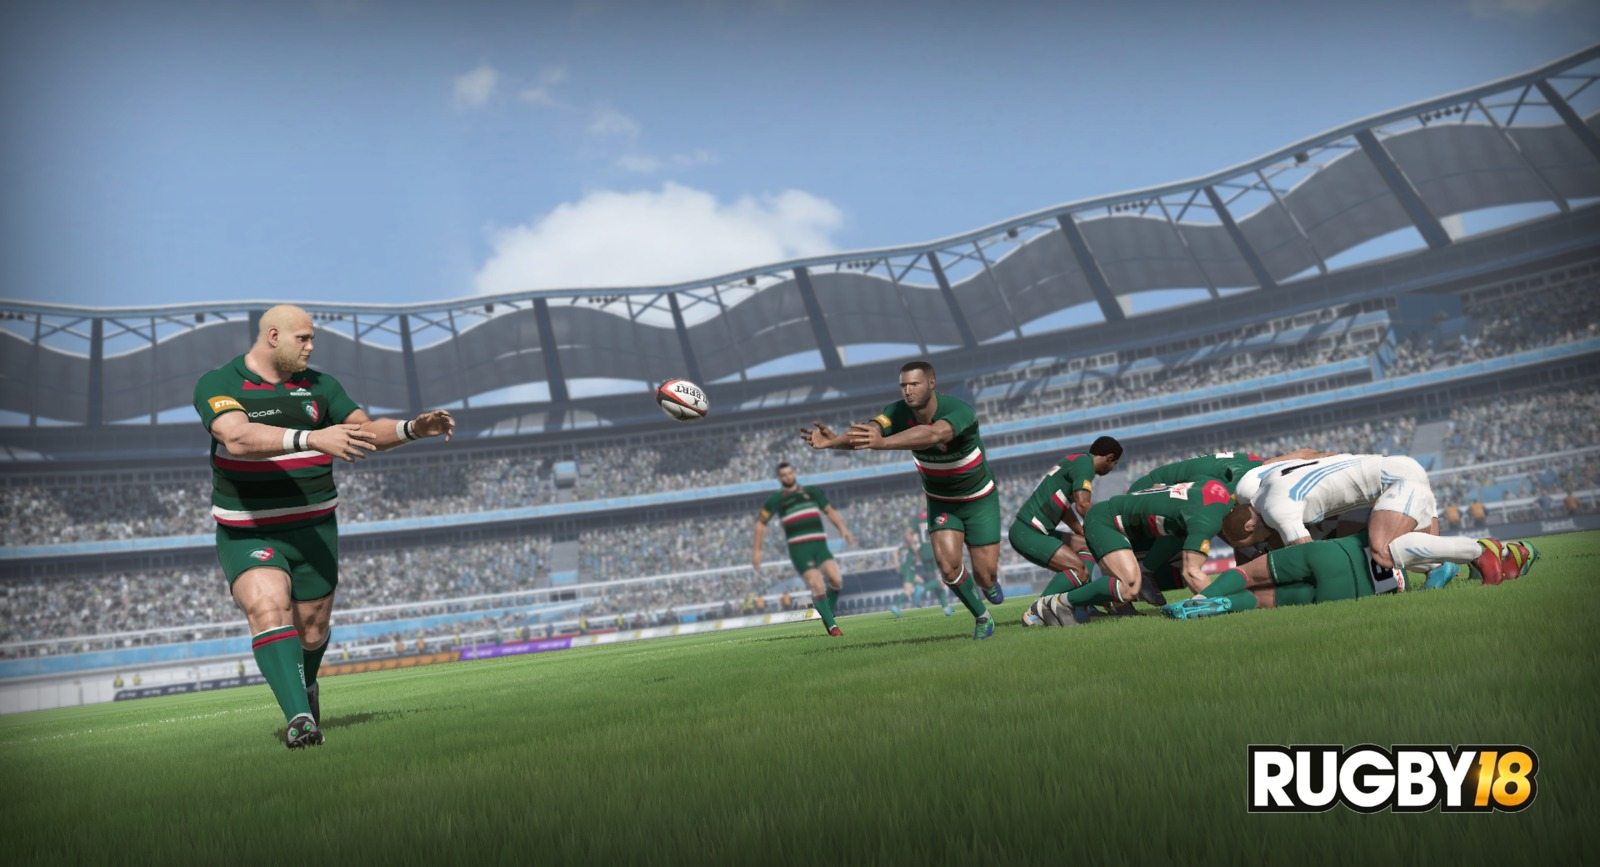 Rugby 18 for PC image